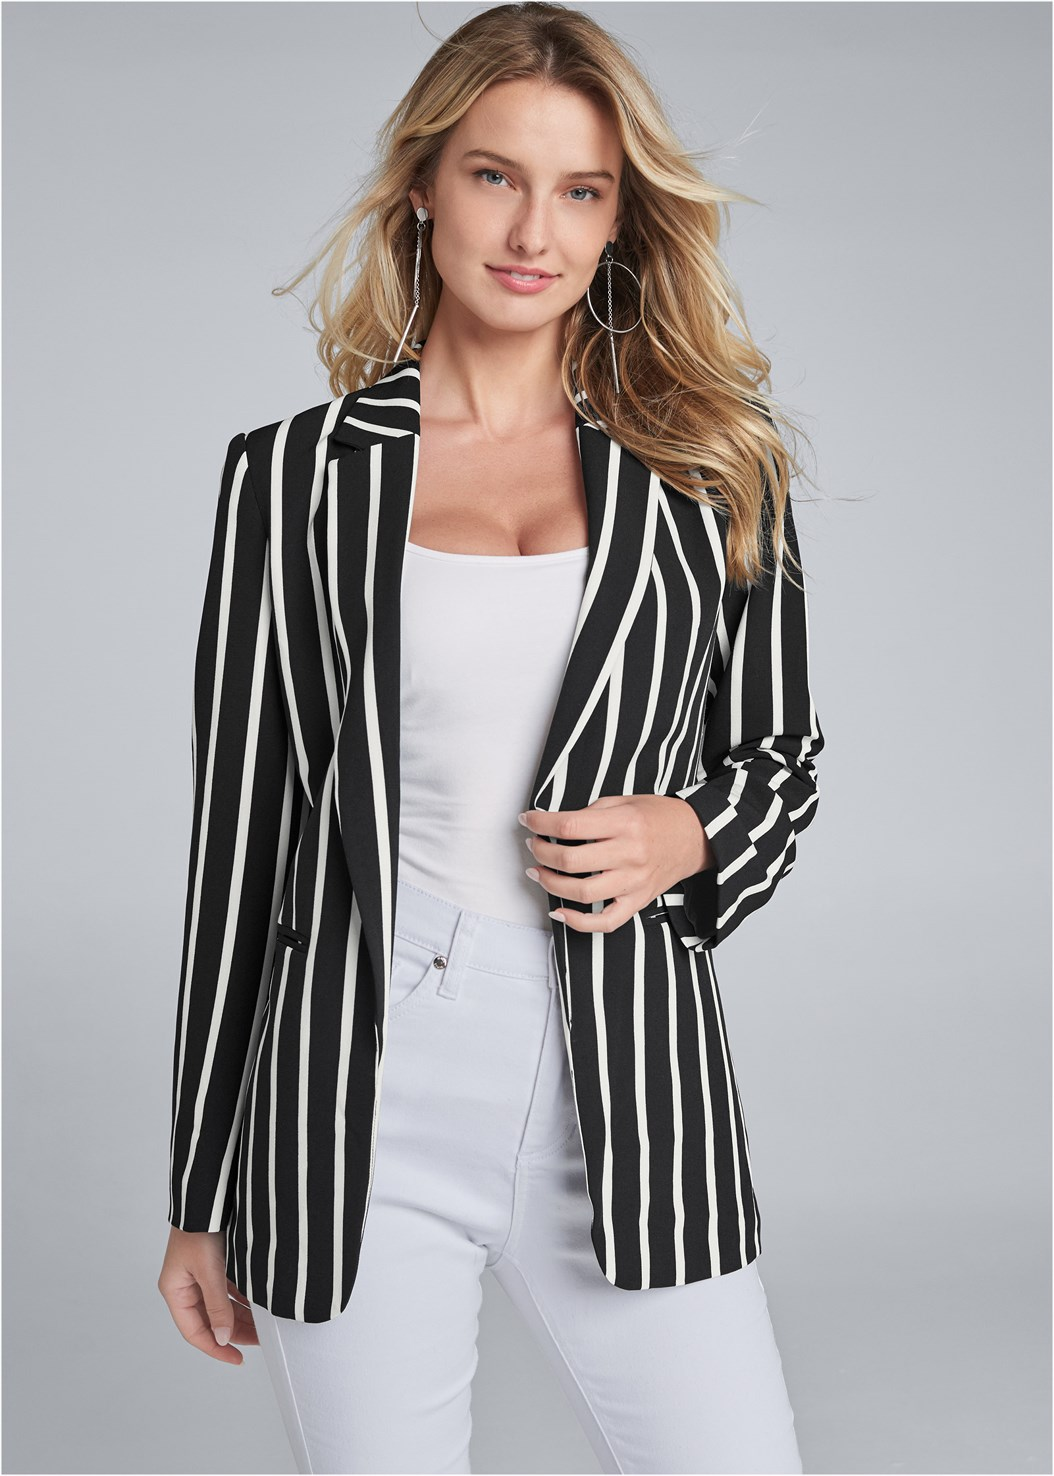 Striped Blazer,Basic Cami Two Pack,Mid Rise Color Skinny Jeans,Bum Lifter Jeans,Strapless Bra With Geo Lace,High Heel Strappy Sandals,Hoop Detail Earrings